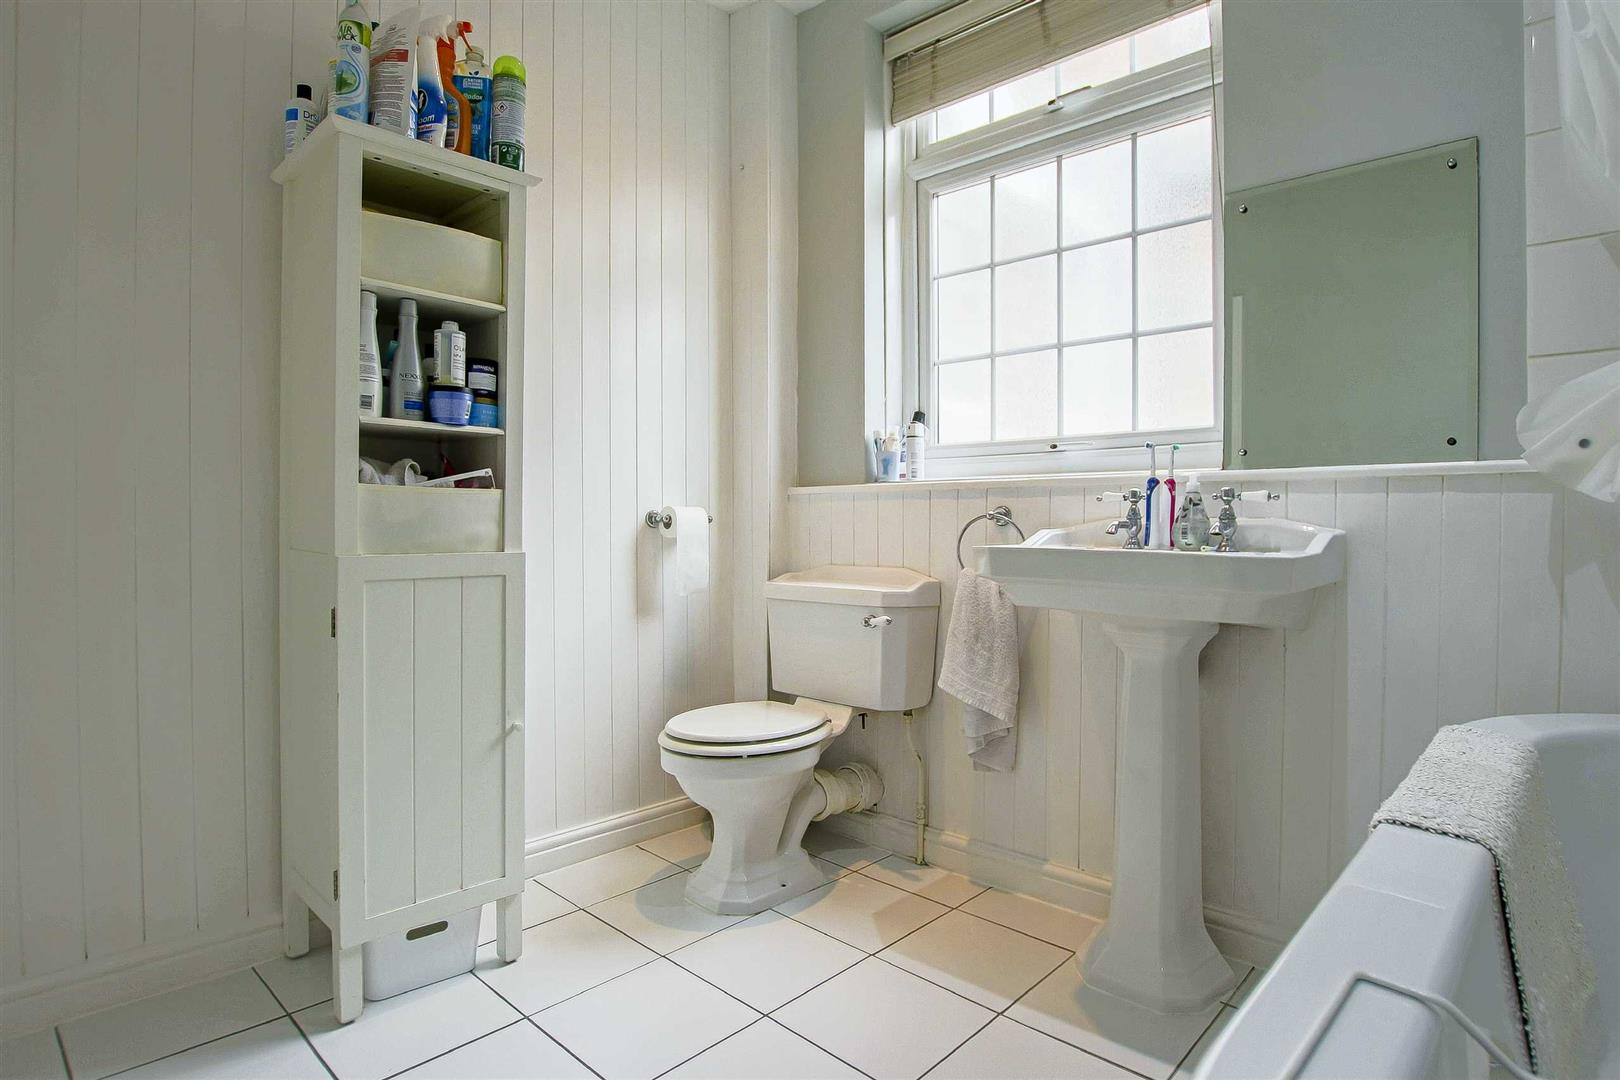 5 Bedroom Terraced House For Sale - Image 9